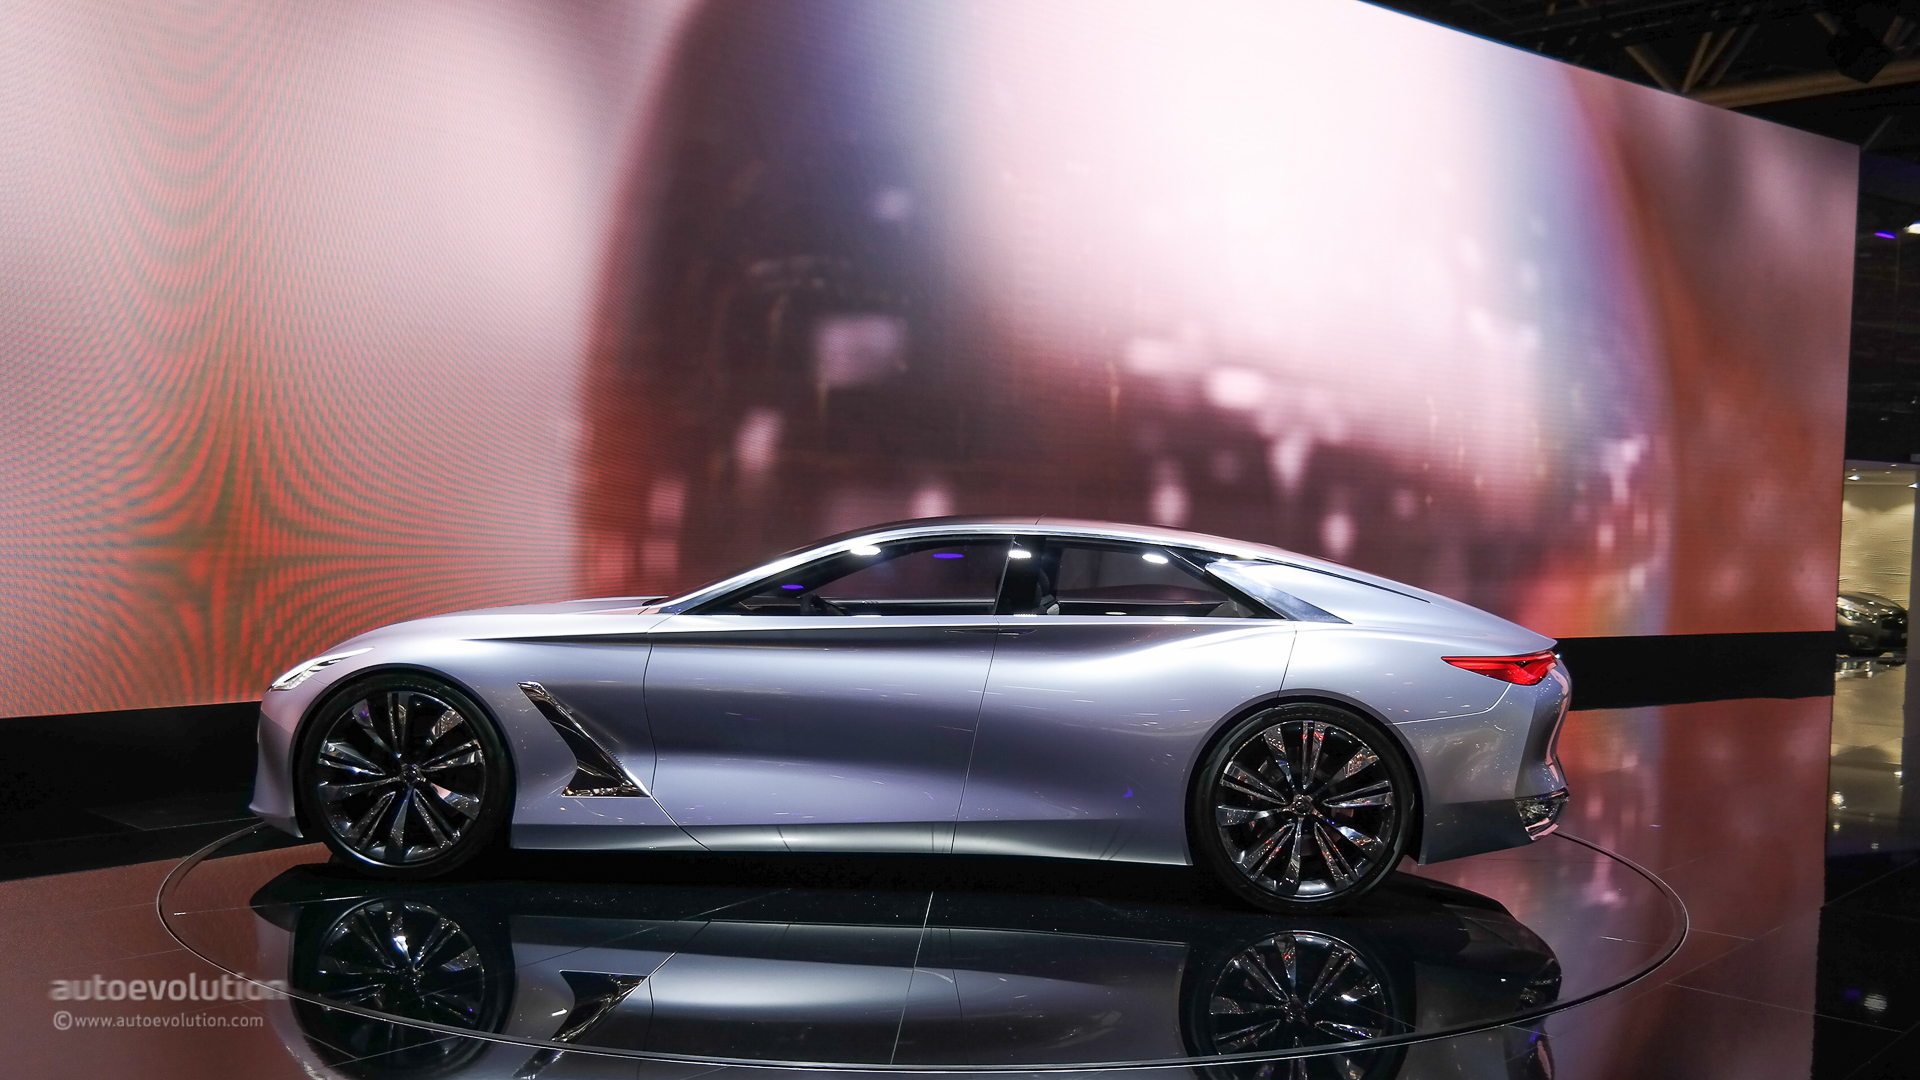 Safest Motorcycle Helmet >> Stylish Infiniti Q80 Four-Door Coupe Demands Attention in Dynamic Video Debut - autoevolution